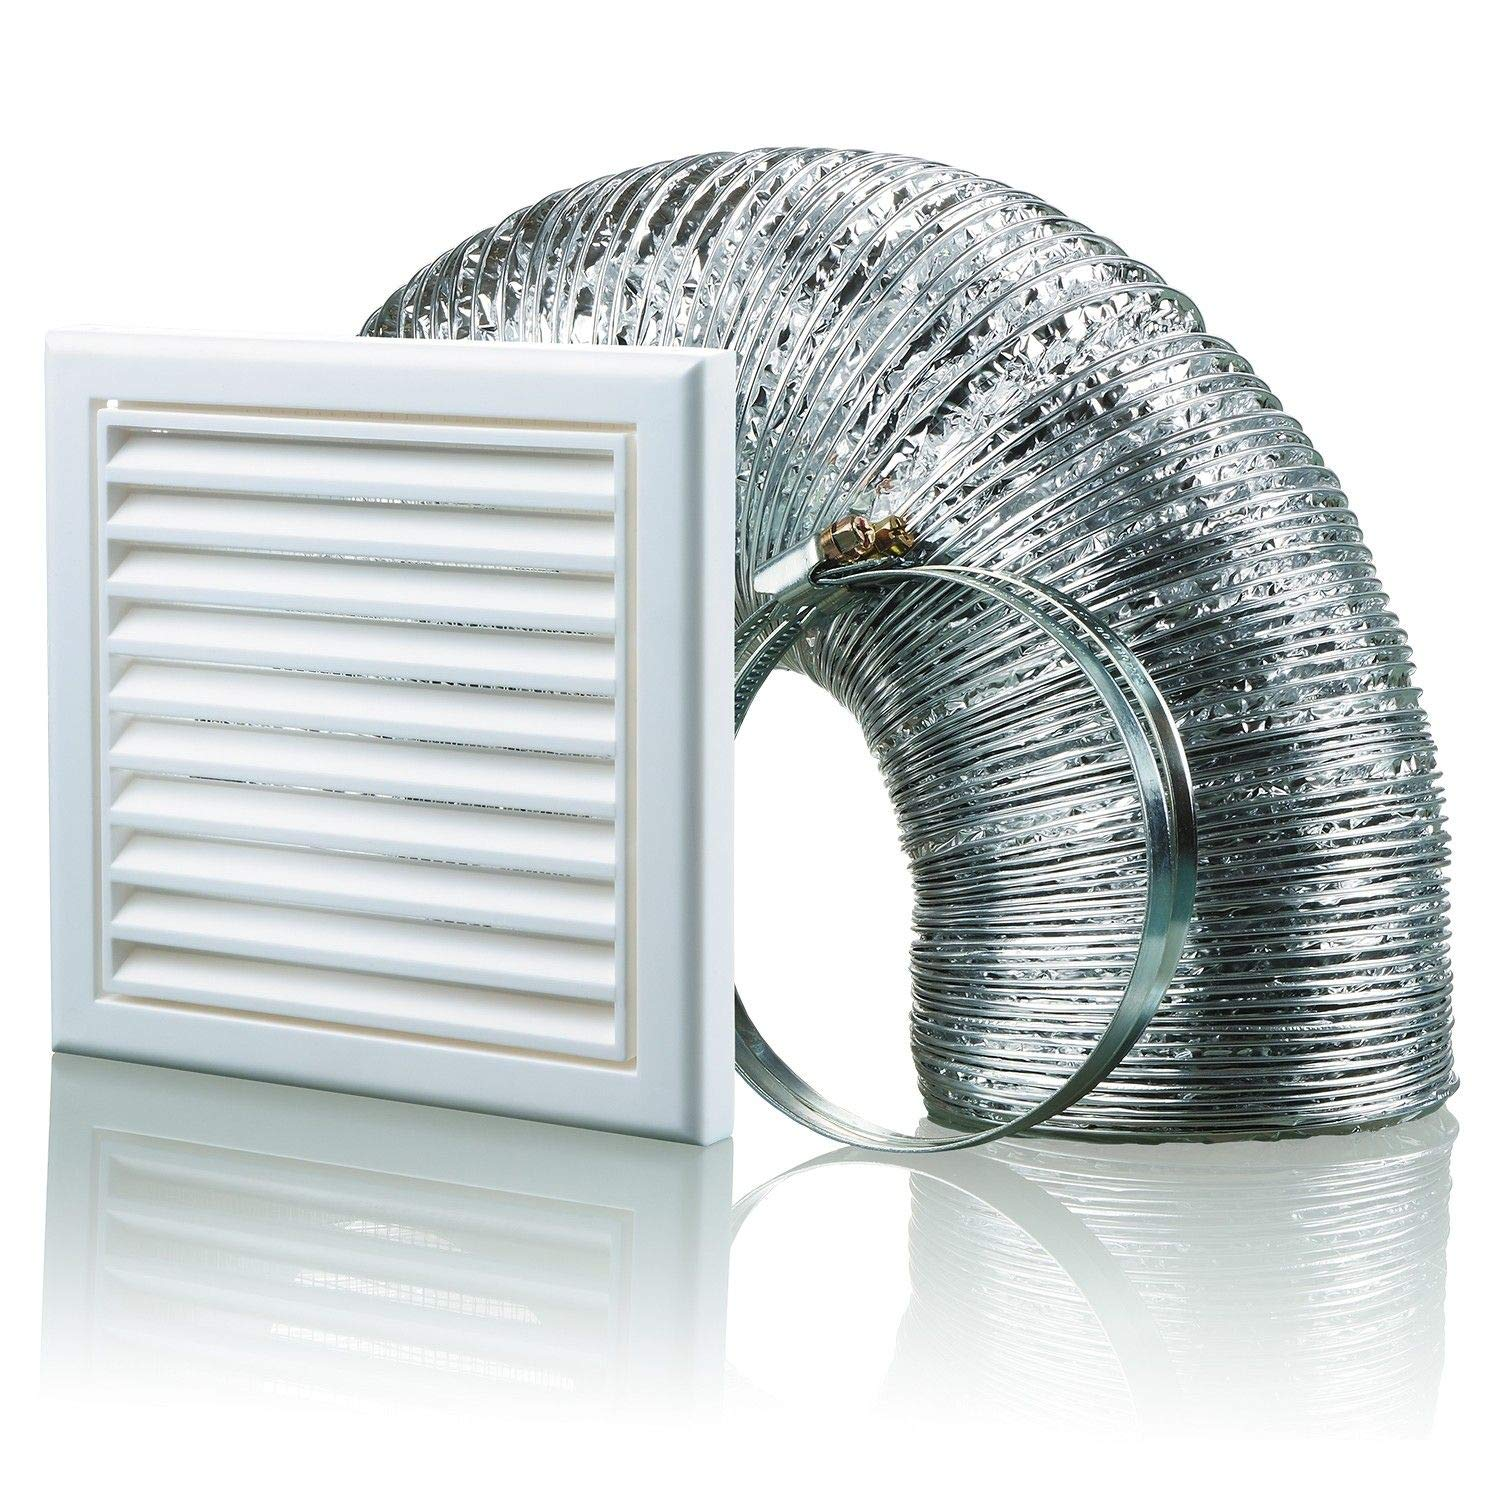 Blauberg Cooker Hood Duct Vent Kit Fan Extract 125mm White Buy Online In Cayman Islands Blauberg Products In Cayman Islands See Prices Reviews And Free Delivery Over Ci 60 Desertcart